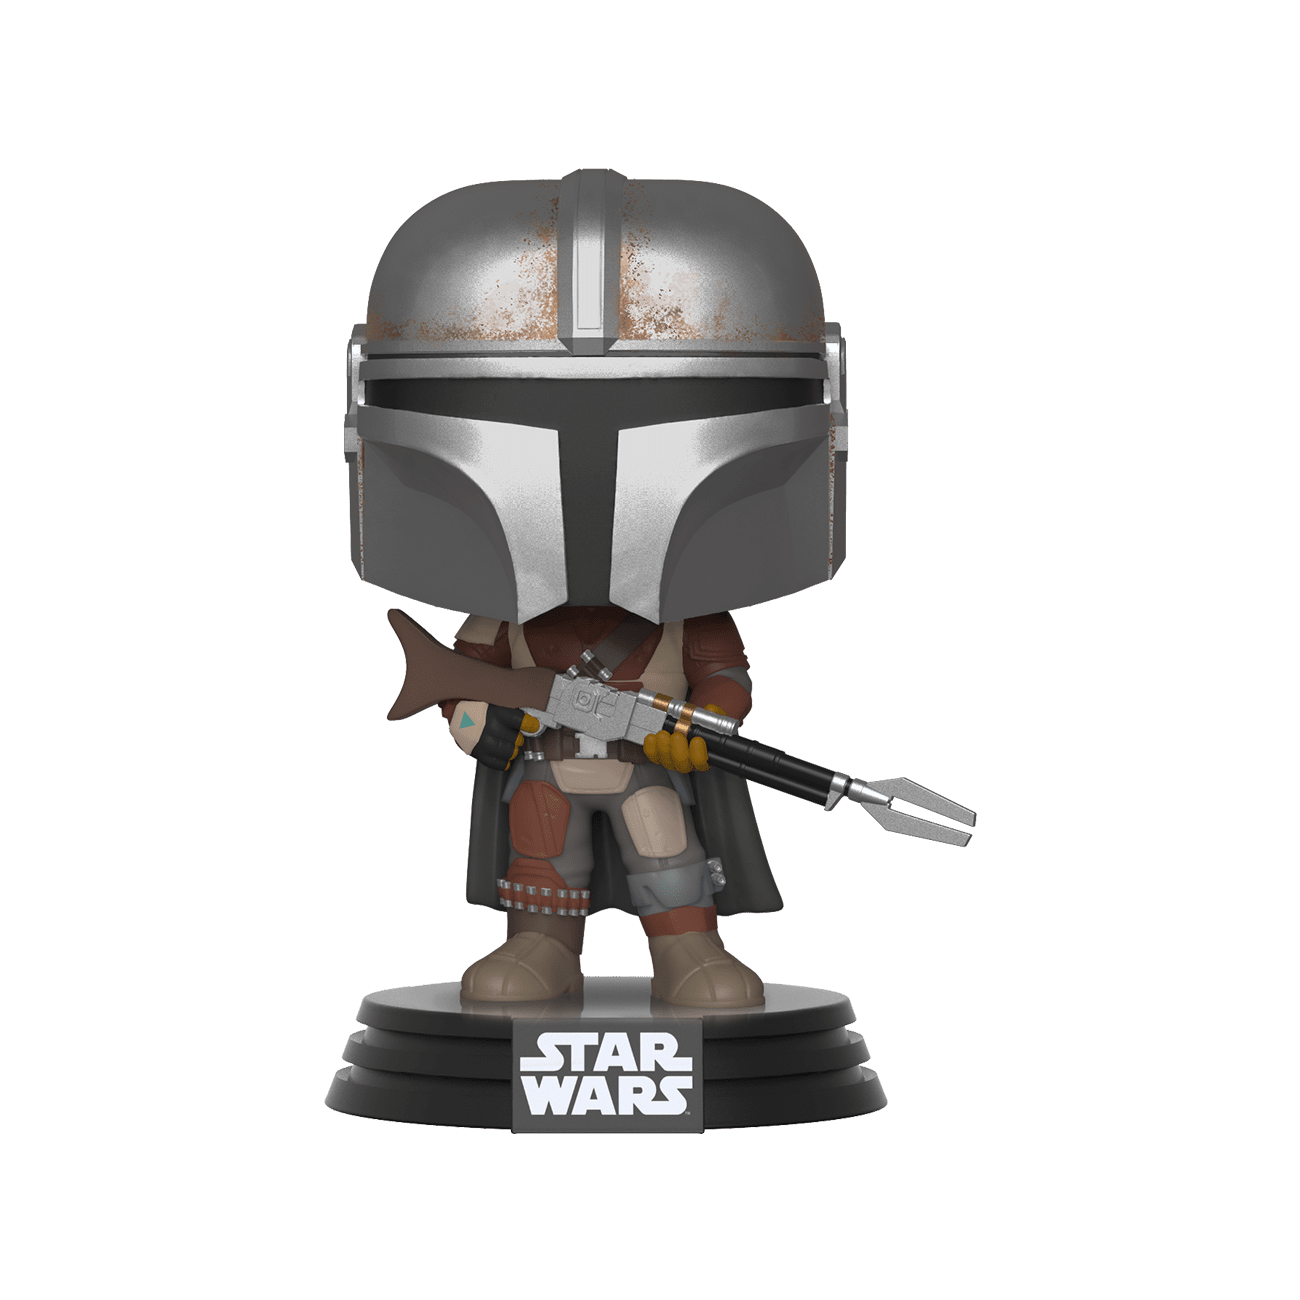 POP! Star Wars: The Mandalorian